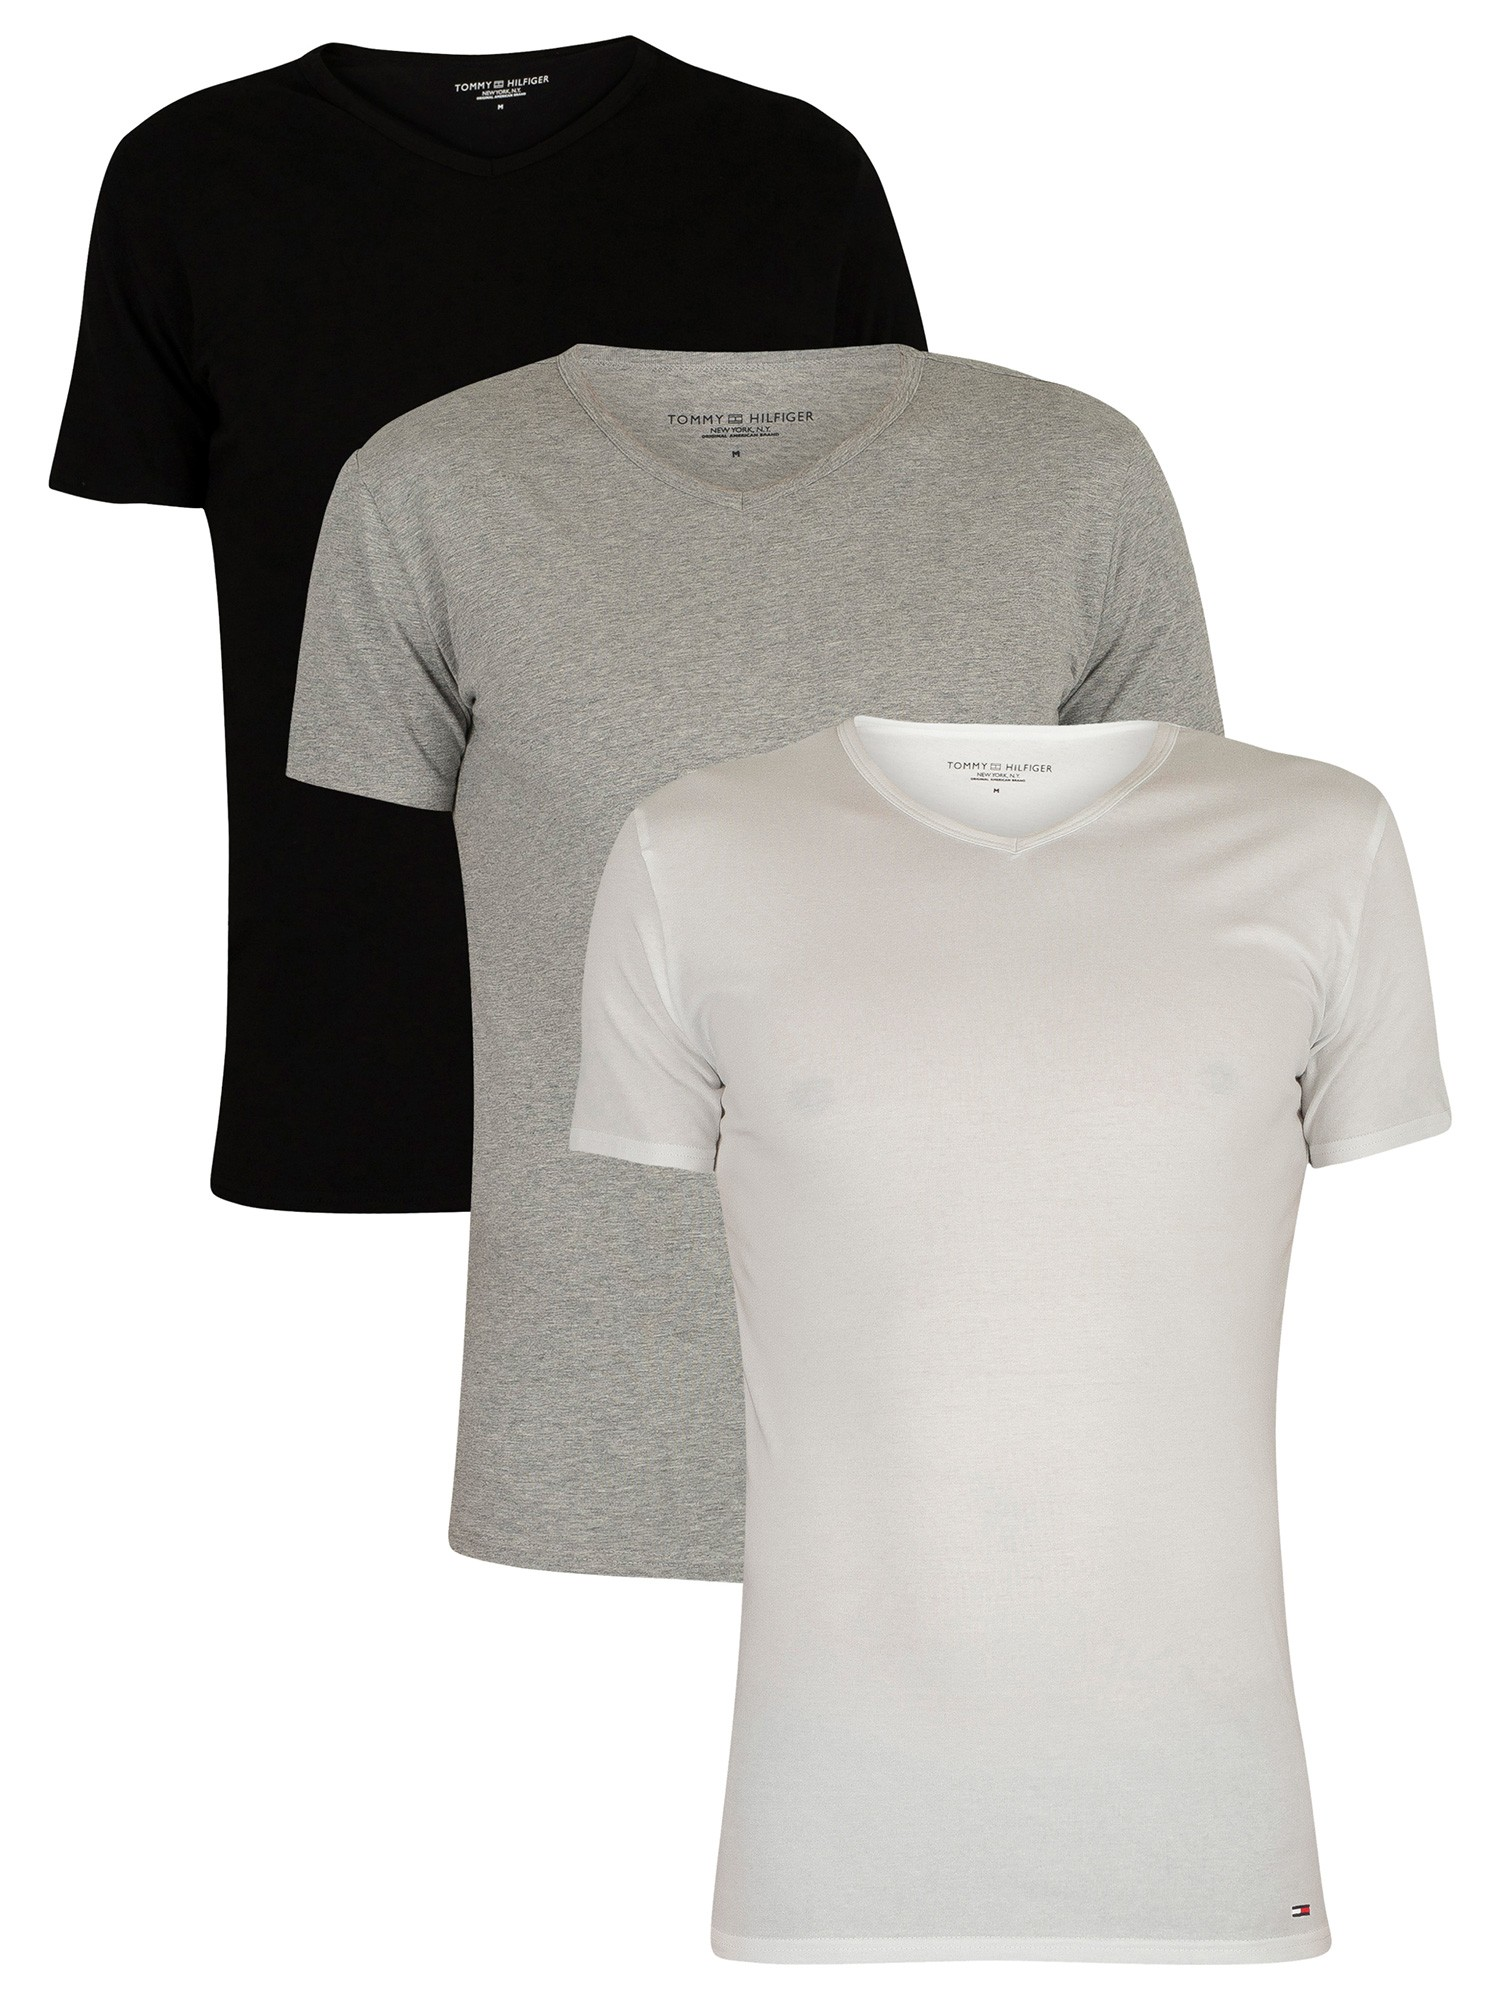 8b89d9a8 Tommy Hilfiger Black/Grey Heather/White 3 Pack Premium Essentials V-Neck T- Shirts | Standout